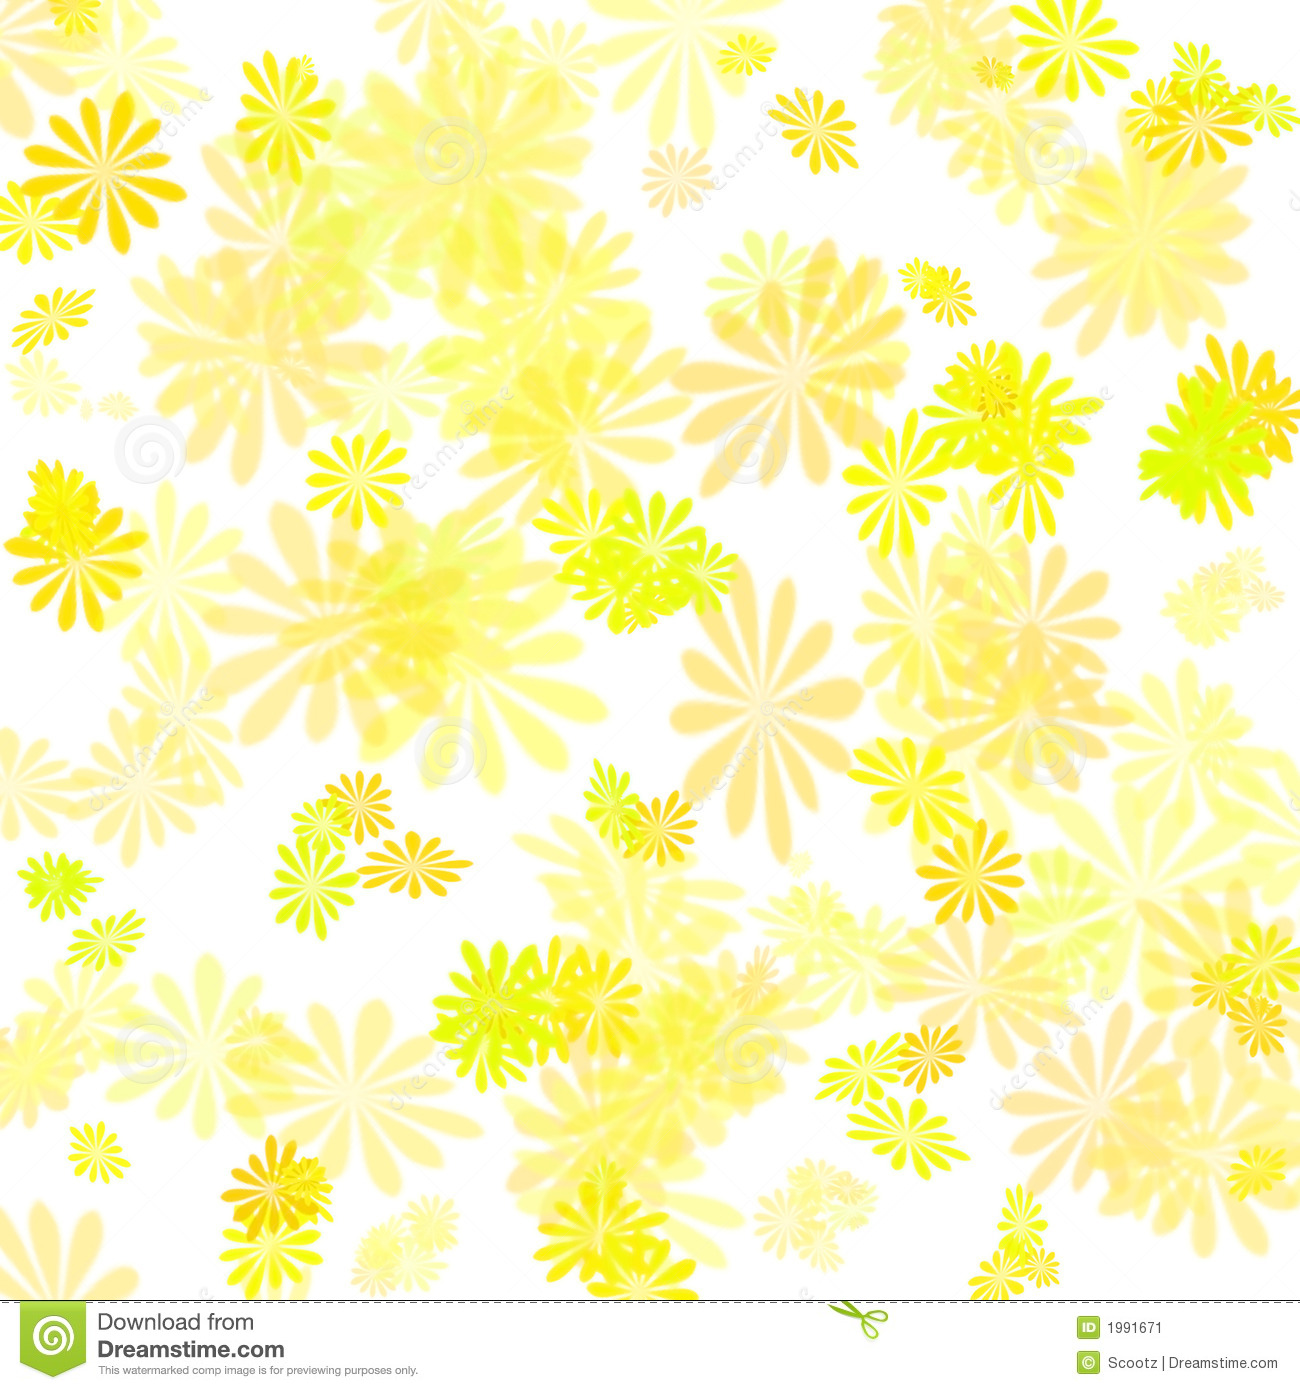 yellow wrapping paper Items 1 - 36 of 1102 dress up your birthday and holiday gifts with hallmark gift wrap choose from wrapping paper, gift bags, bows, ribbons, tags and tissue to make your gifts shine.